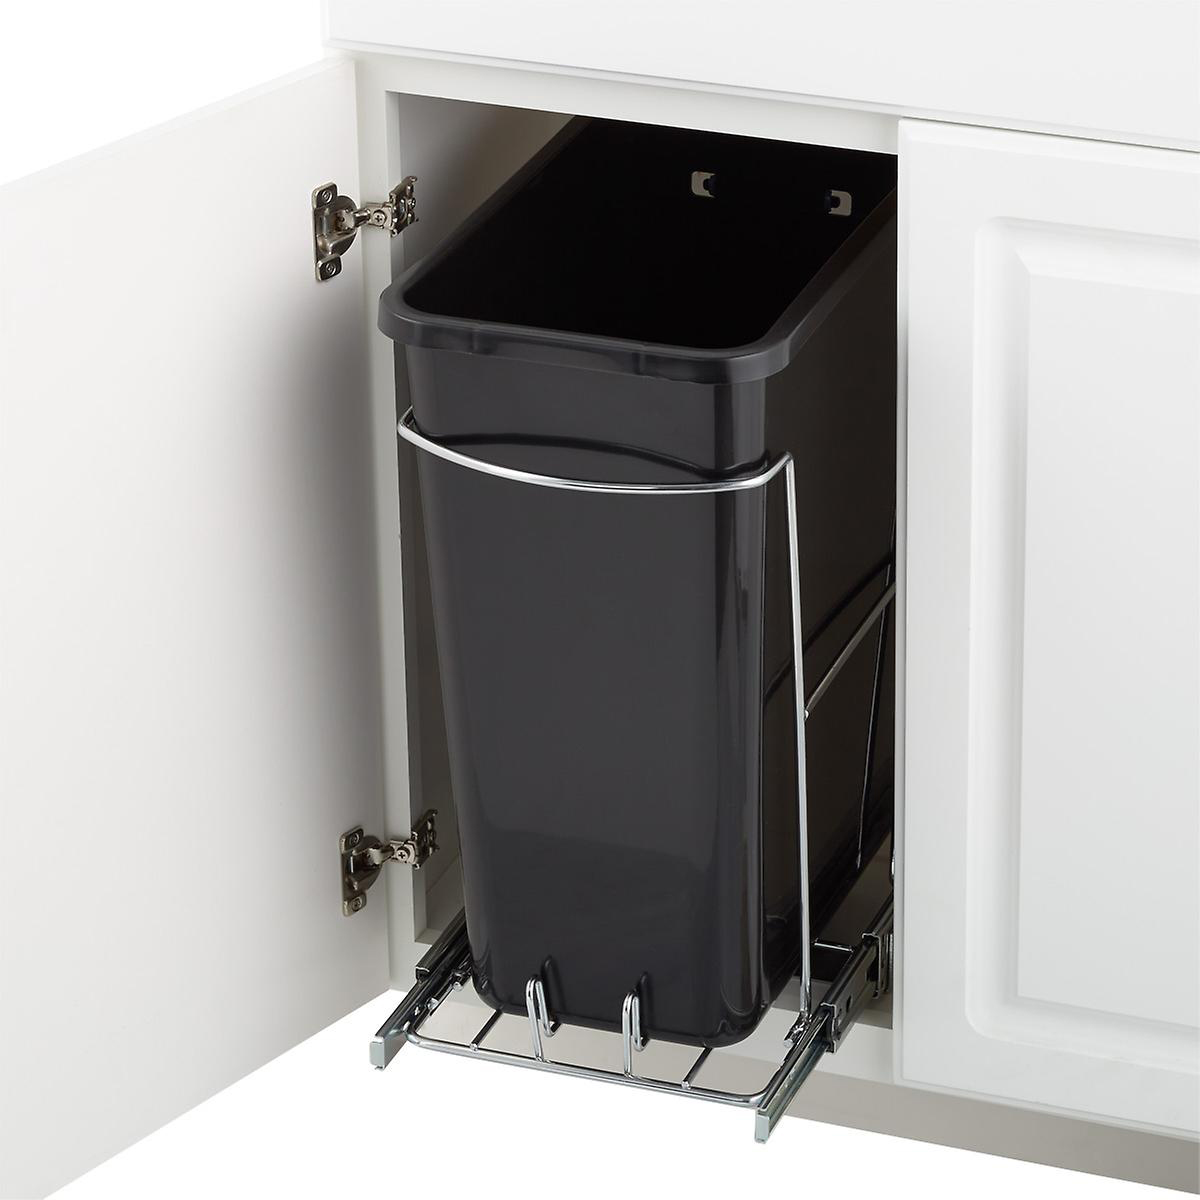 The Container Store Eight Gallon Pull-Out Trash Can